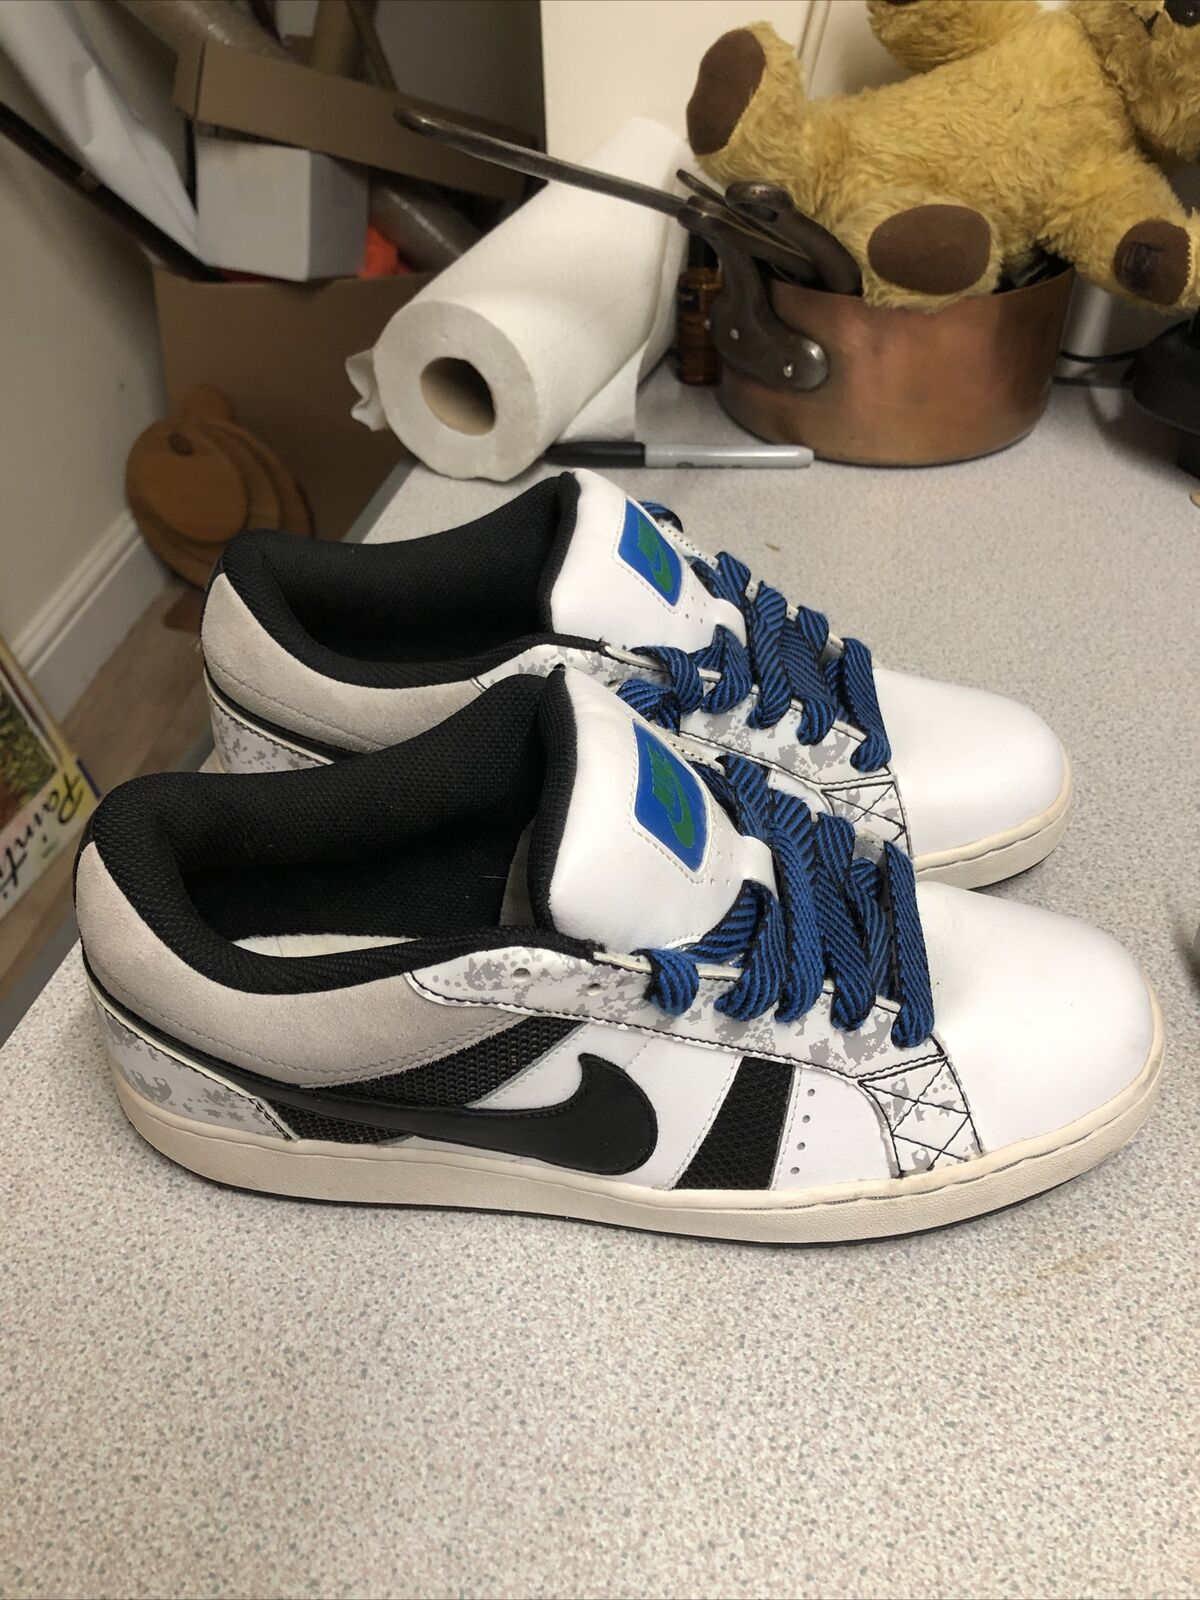 Men's Nike Isolate trainers Leather/Suede Size 9uk 2009